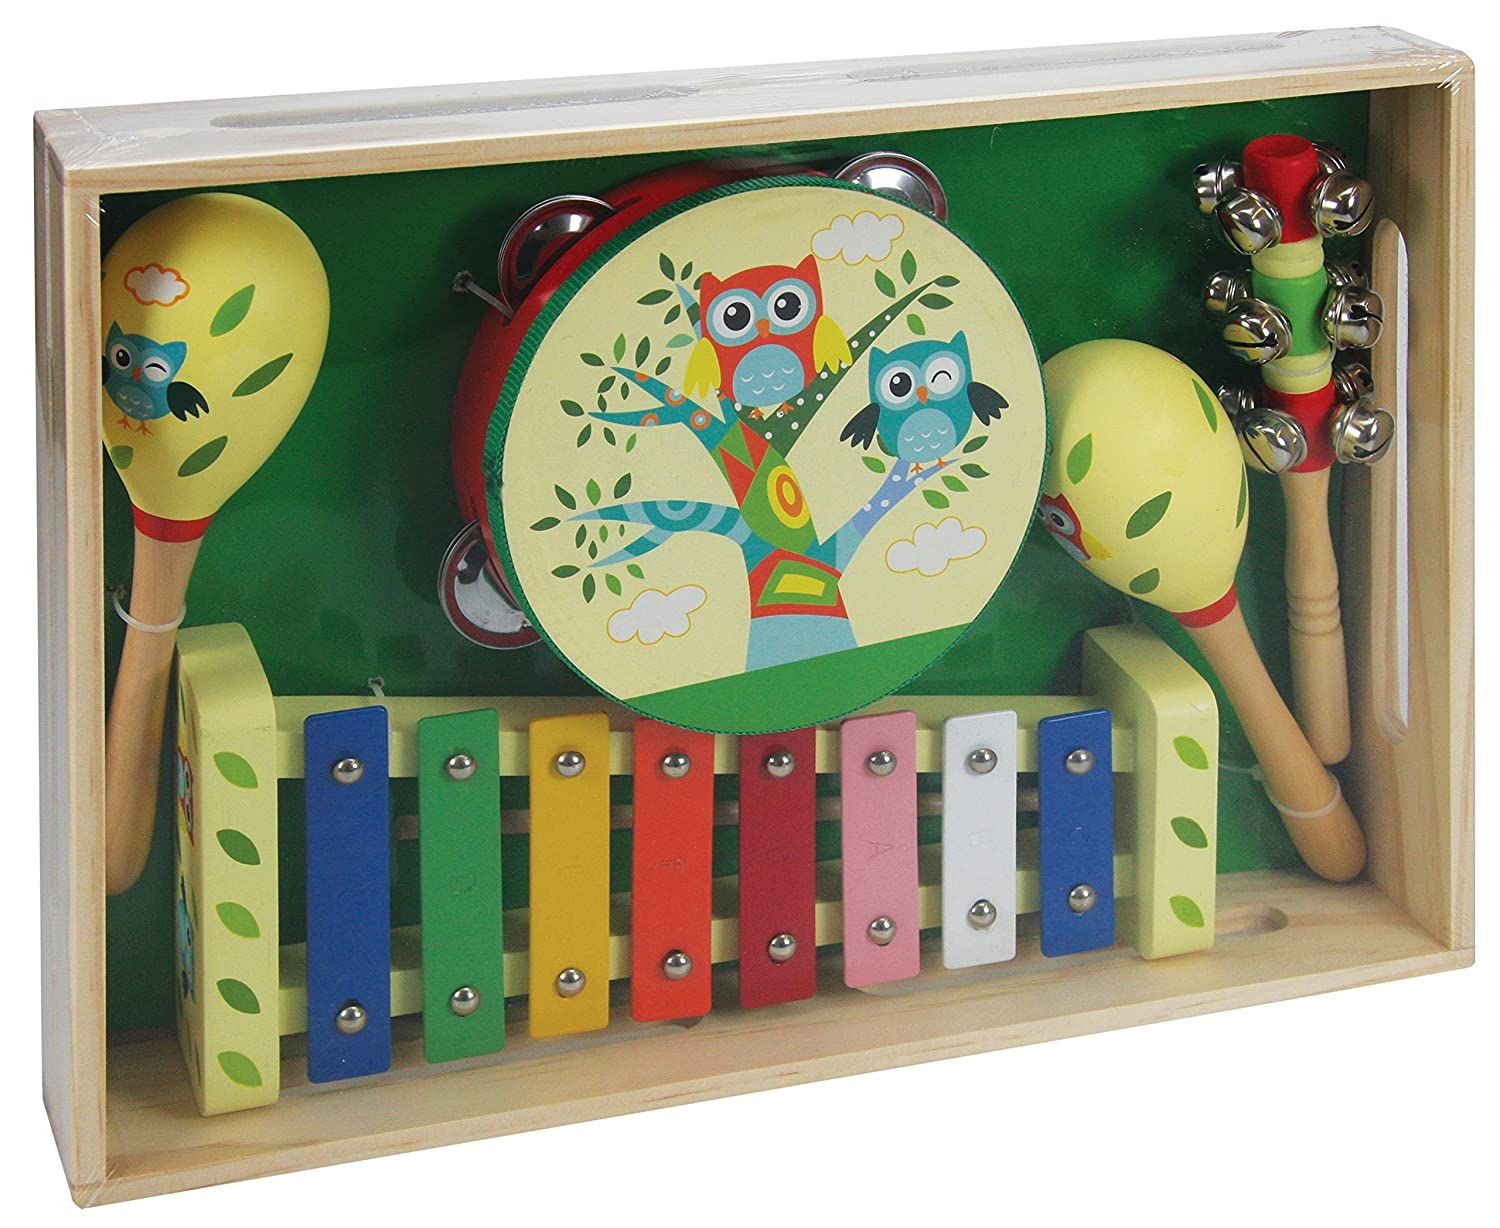 A B Gee LXS0167 Wooden Musical Instrument Set with Owl Design